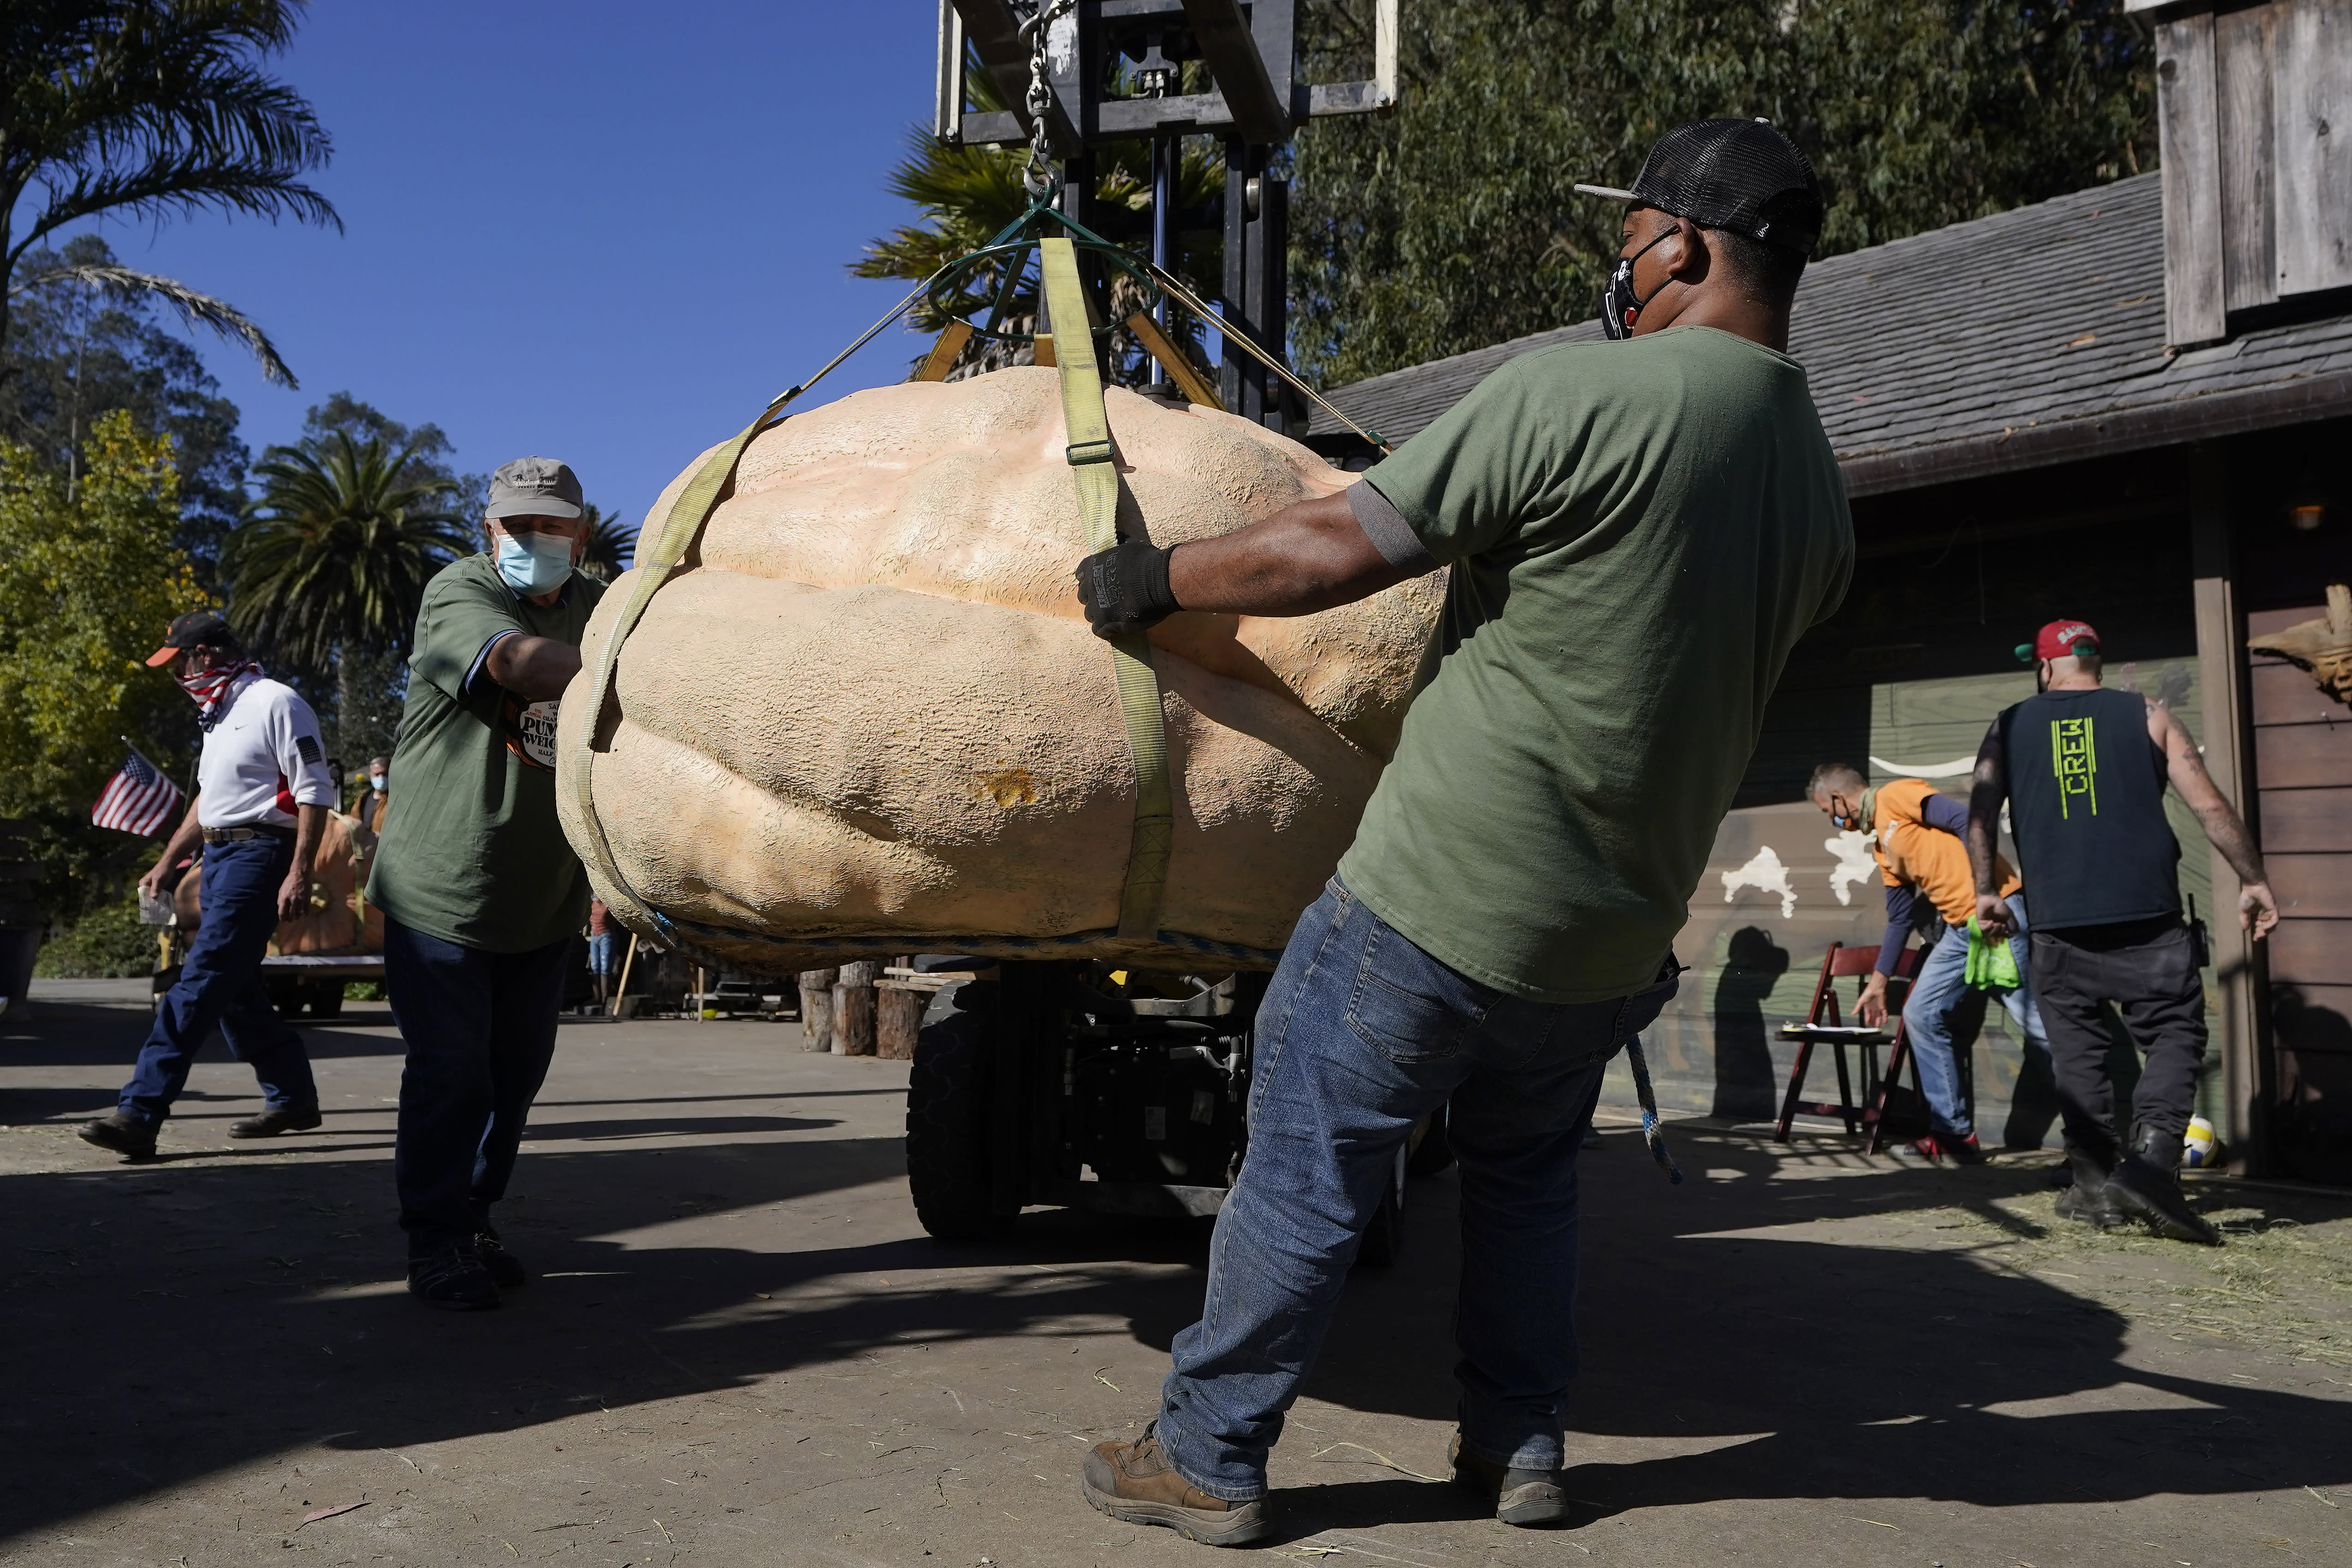 People haul a pumpkin to be loaded onto a scale to be weighed at the Safeway World Championship Pumpkin Weigh-Off in Half Moon Bay, Calif., Monday, Oct. 12, 2020. (AP Photo/Jeff Chiu)